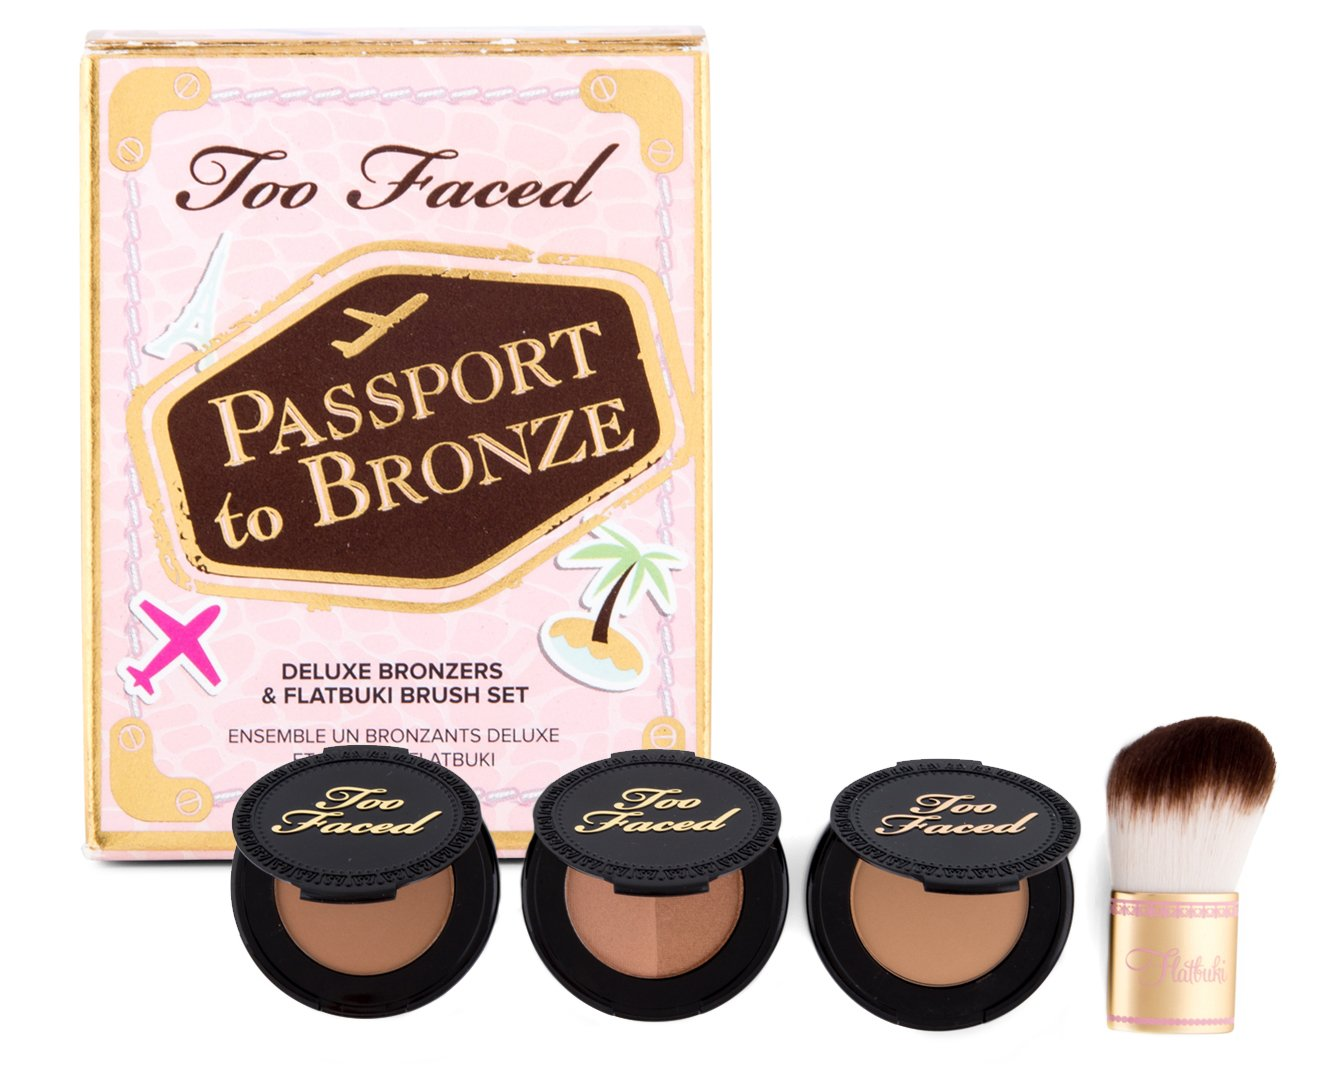 Too Faced Passport To Bronze Featuring Chocolate Soleil, Milk Cocolate Soleil, Sun Bunny & Teddy Bear Flatbuki Brush